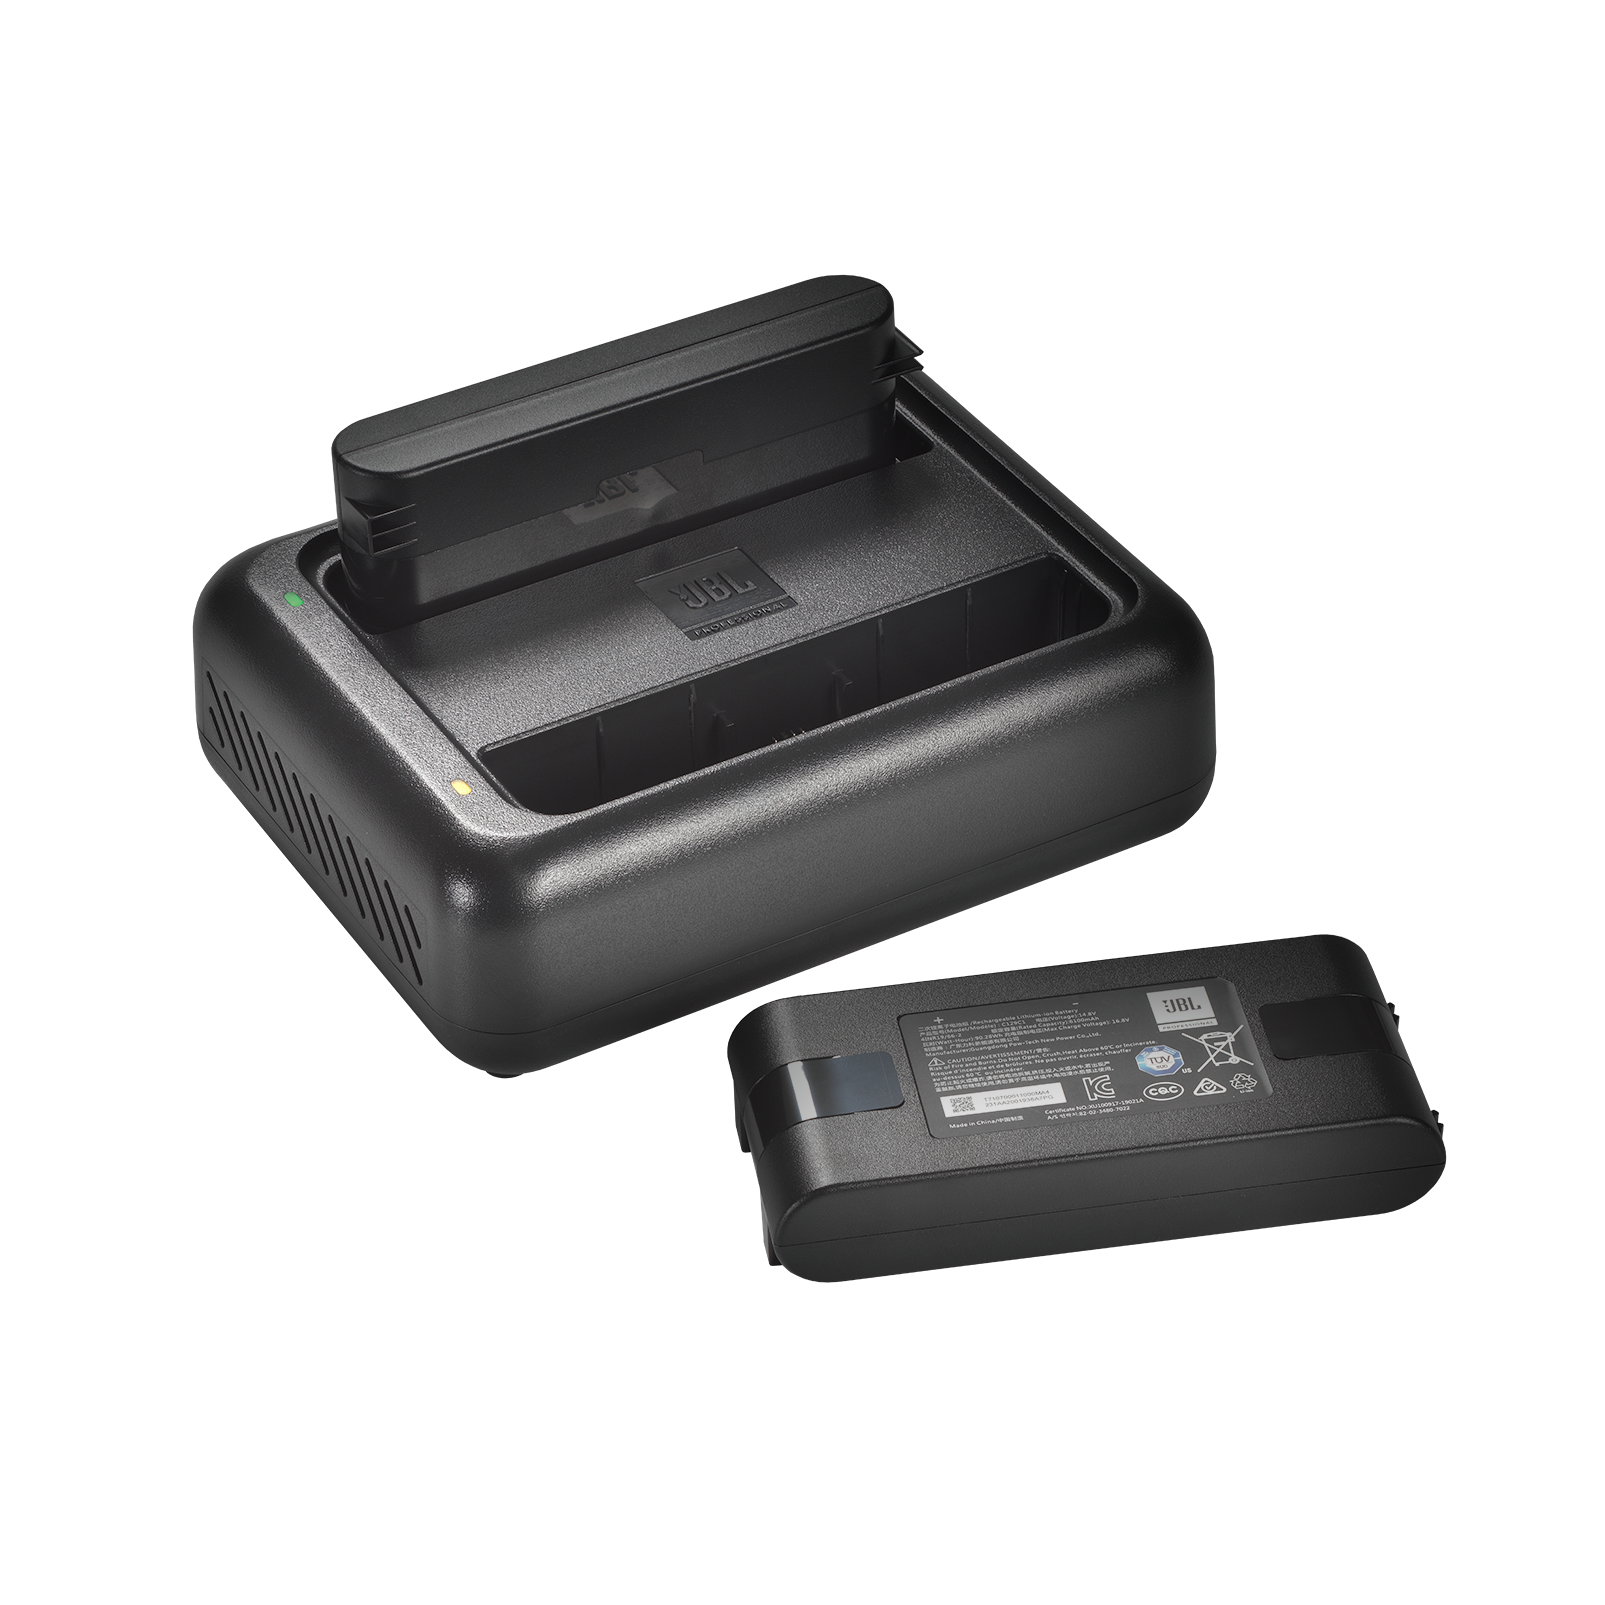 JBL EON ONE Compact Dual Battery Charger - Black - Rapid dual charger for EON ONE Compact batteries - Hero